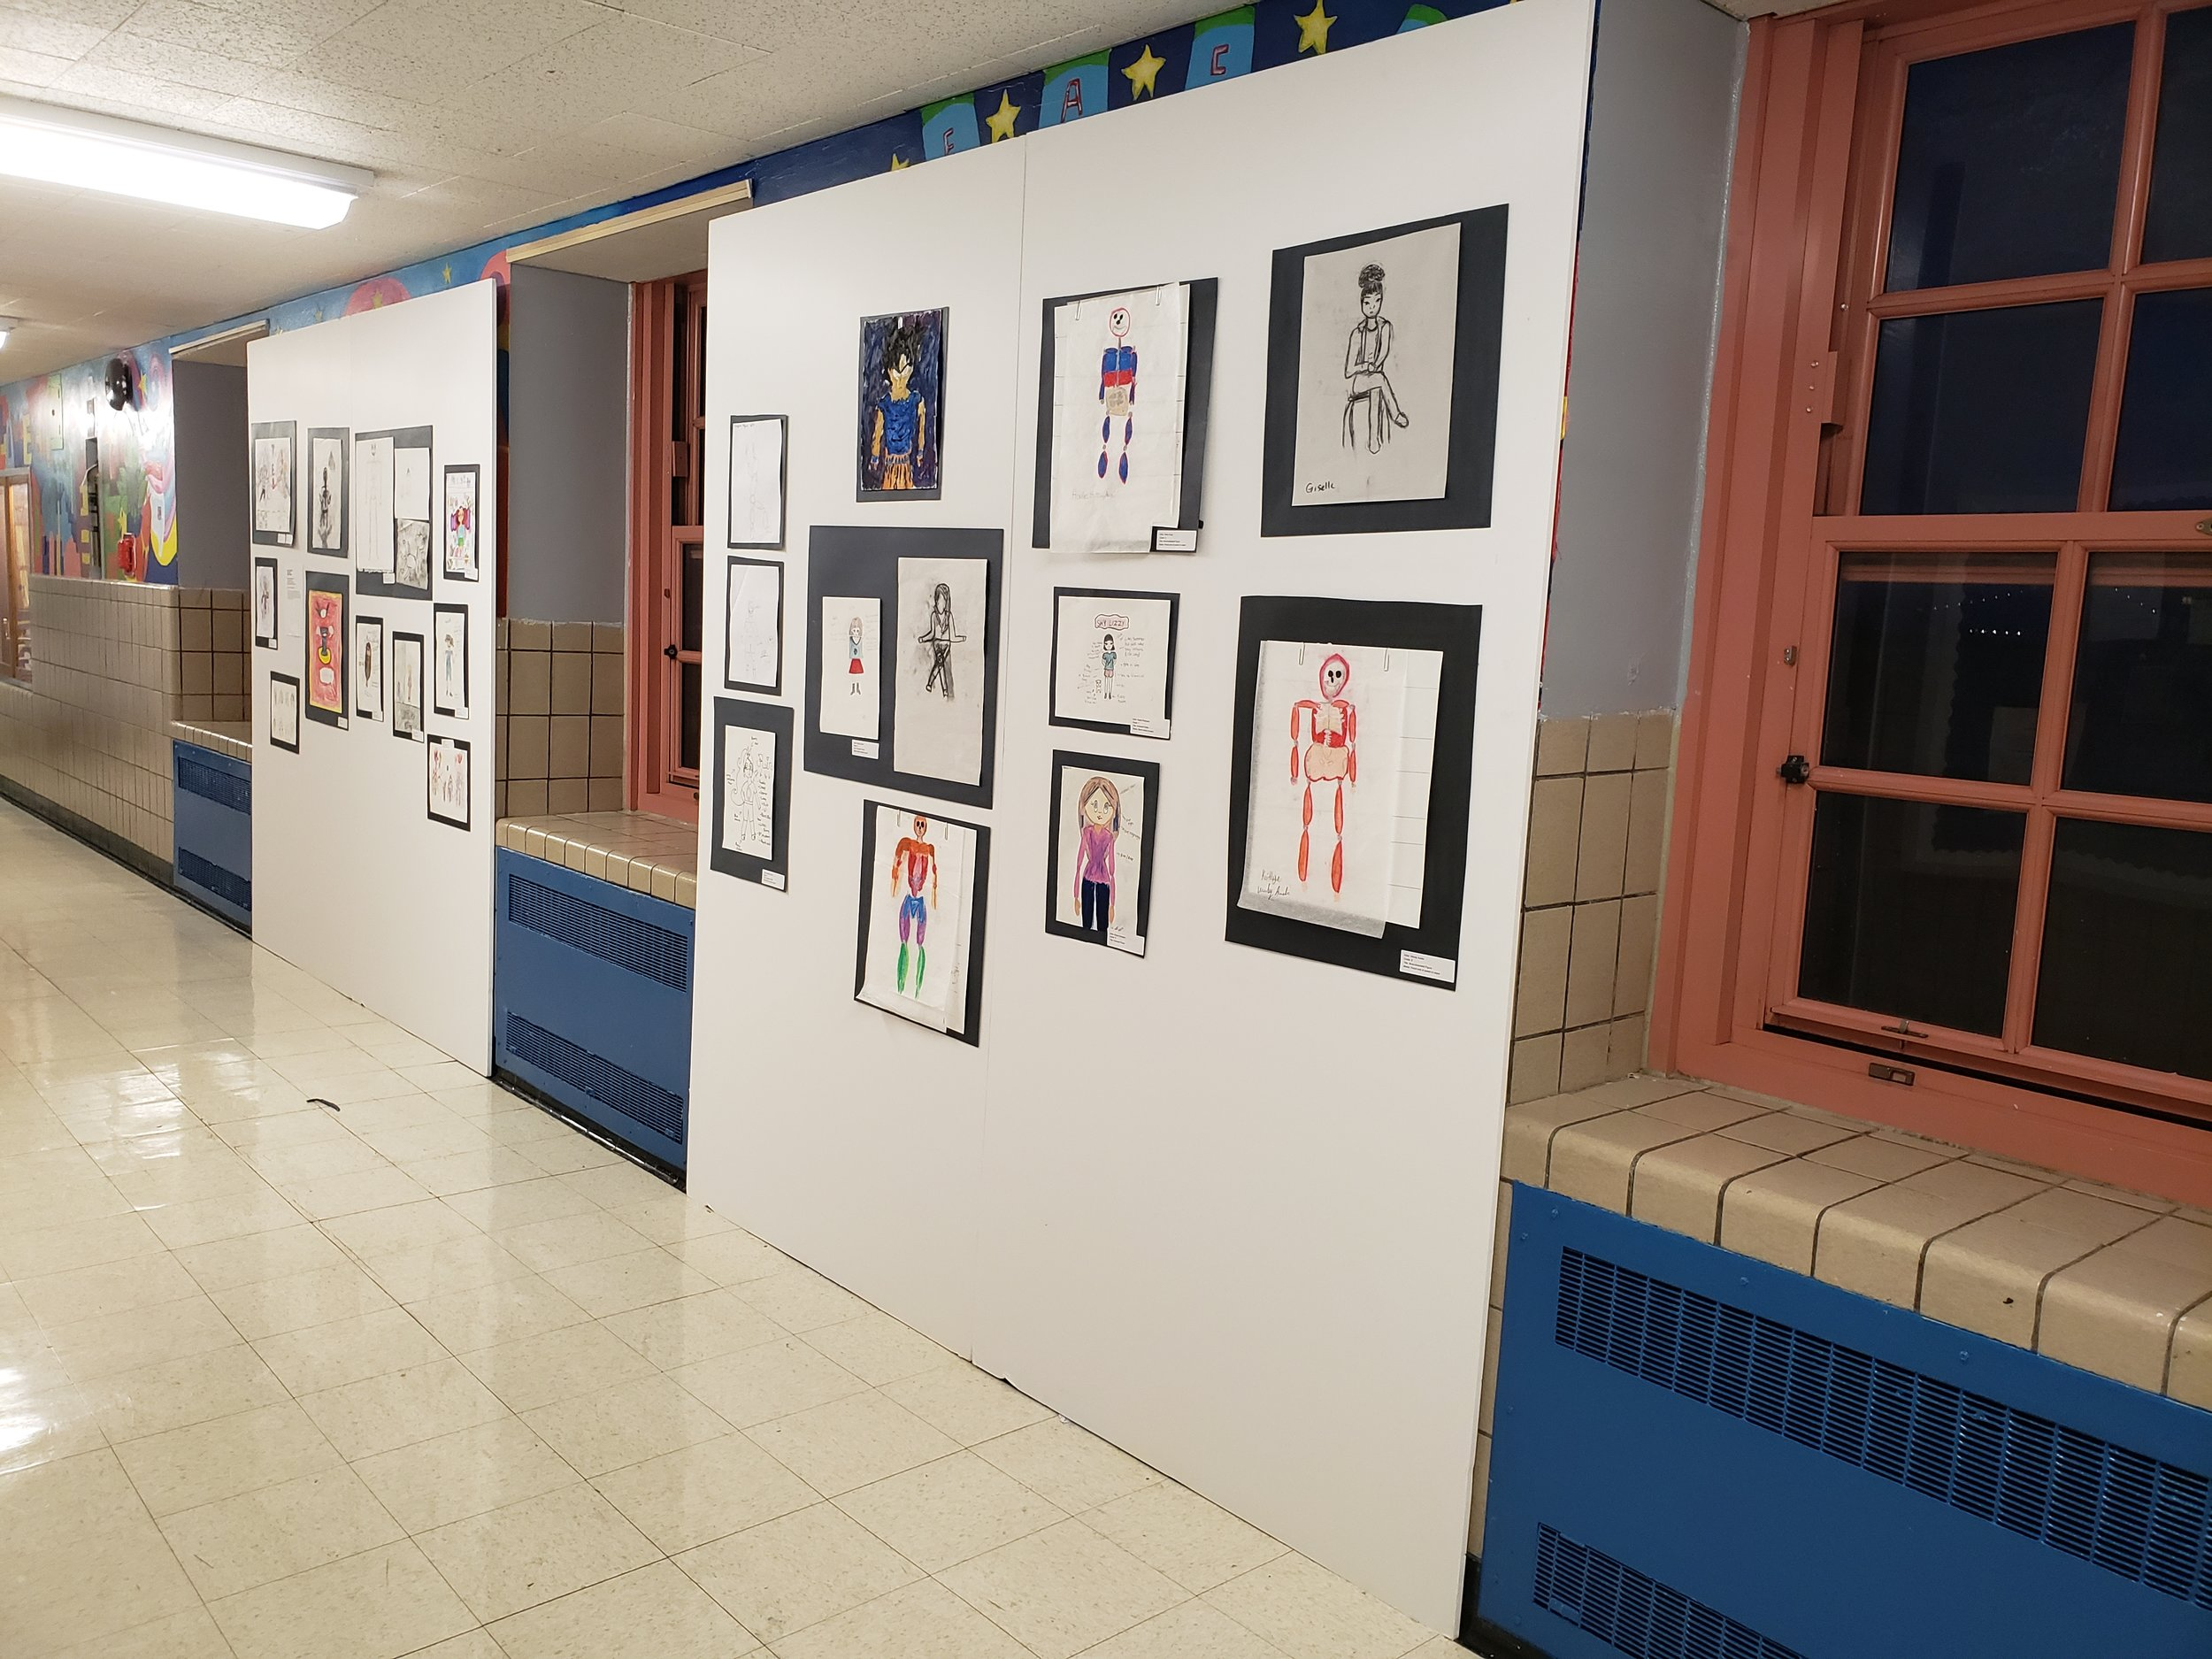 Working under a tight deadline, students in the Cartooning and Anatomy program at HGMS installed the hallway displays for their own culminating event. Working in small teams, they curated the drawings and treated the art with the same care and respect they would give their own submissions.